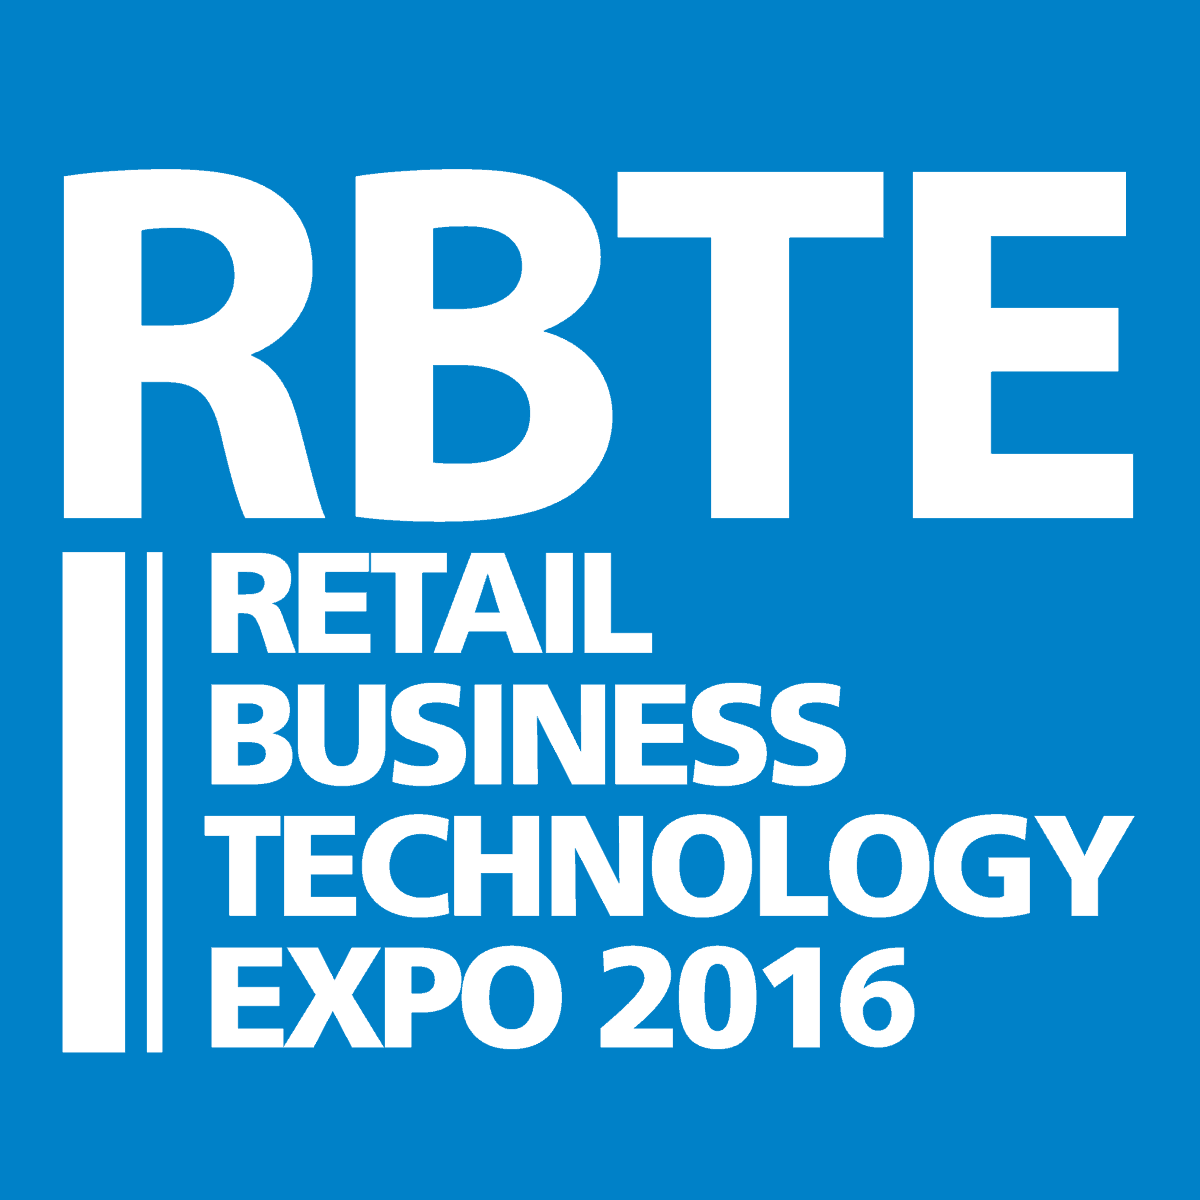 Retail Business Technology Expo 2016